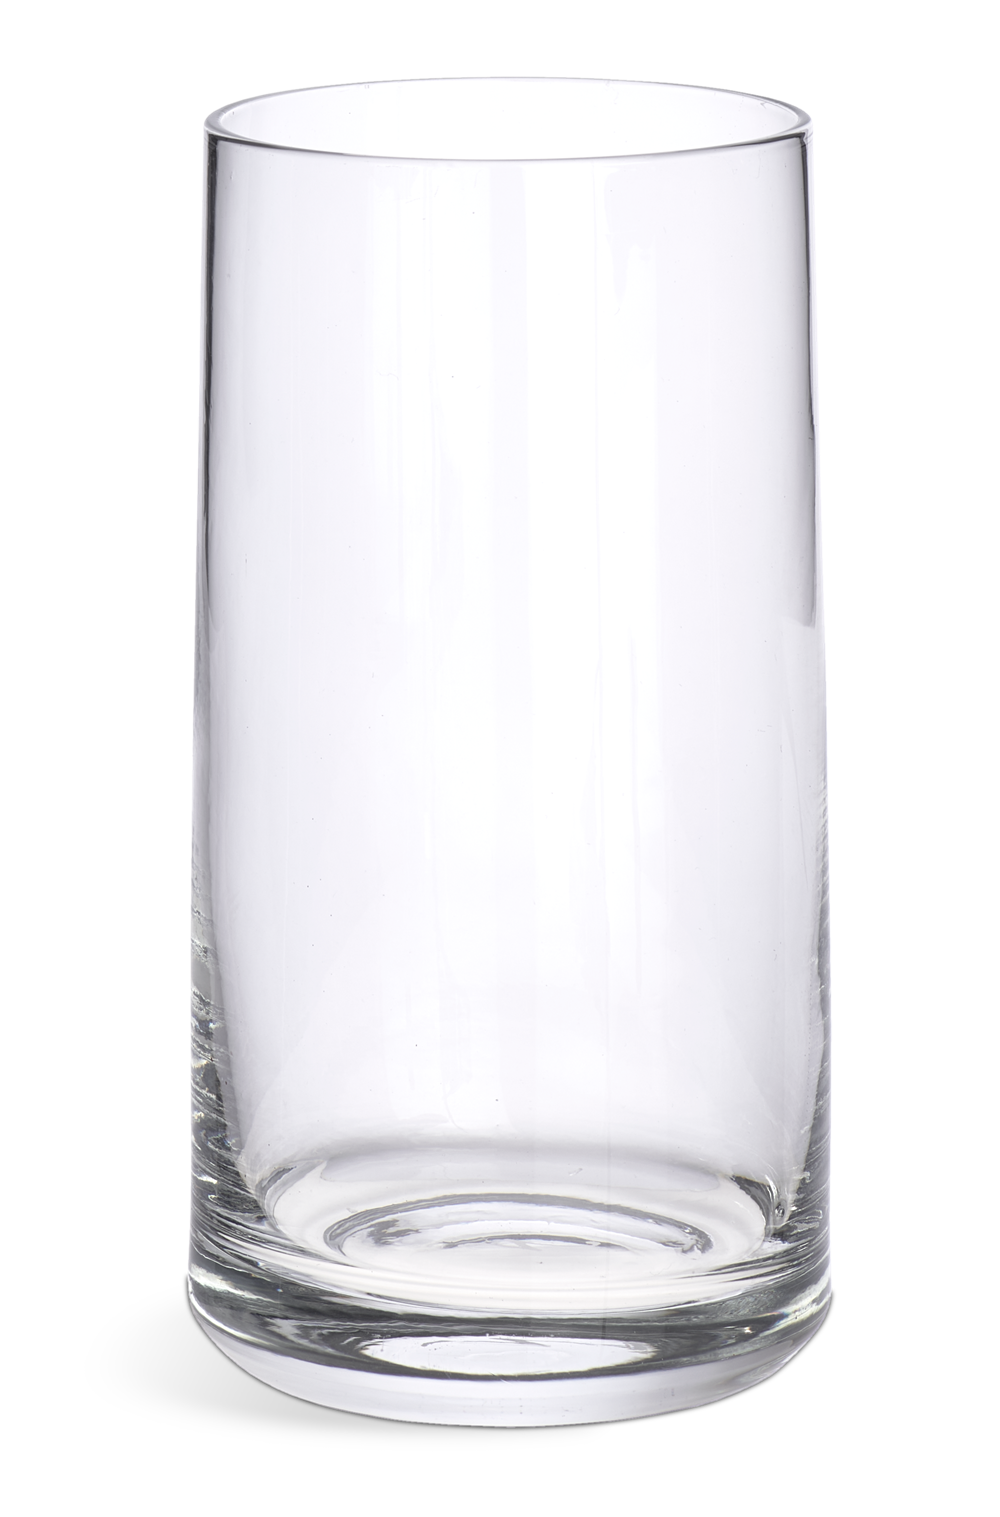 Hoxton Tall Water Glasses, Set of 6 1